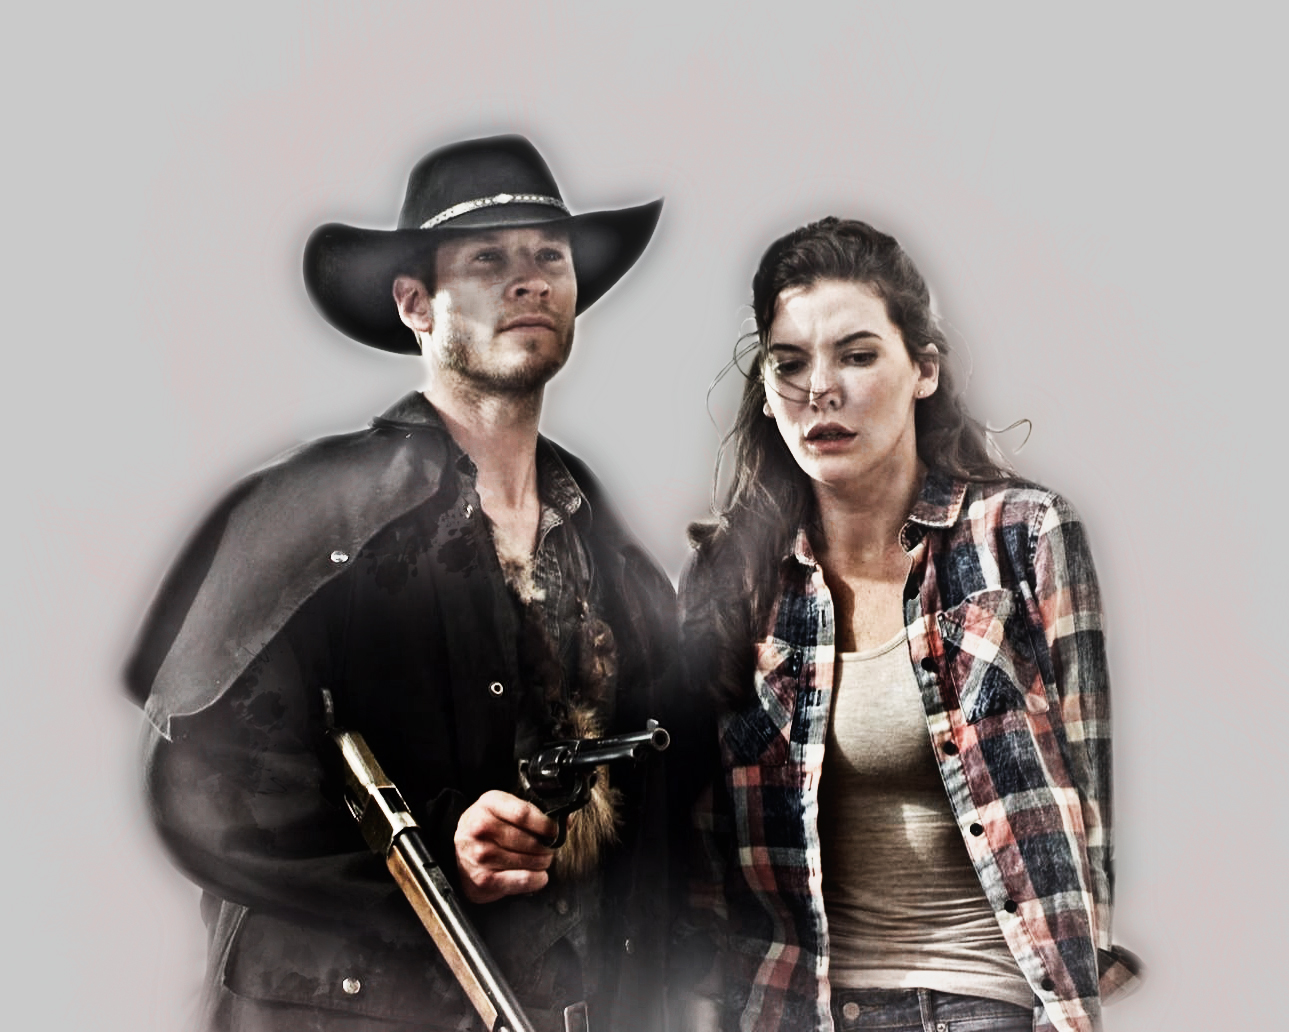 Colt and Lucy